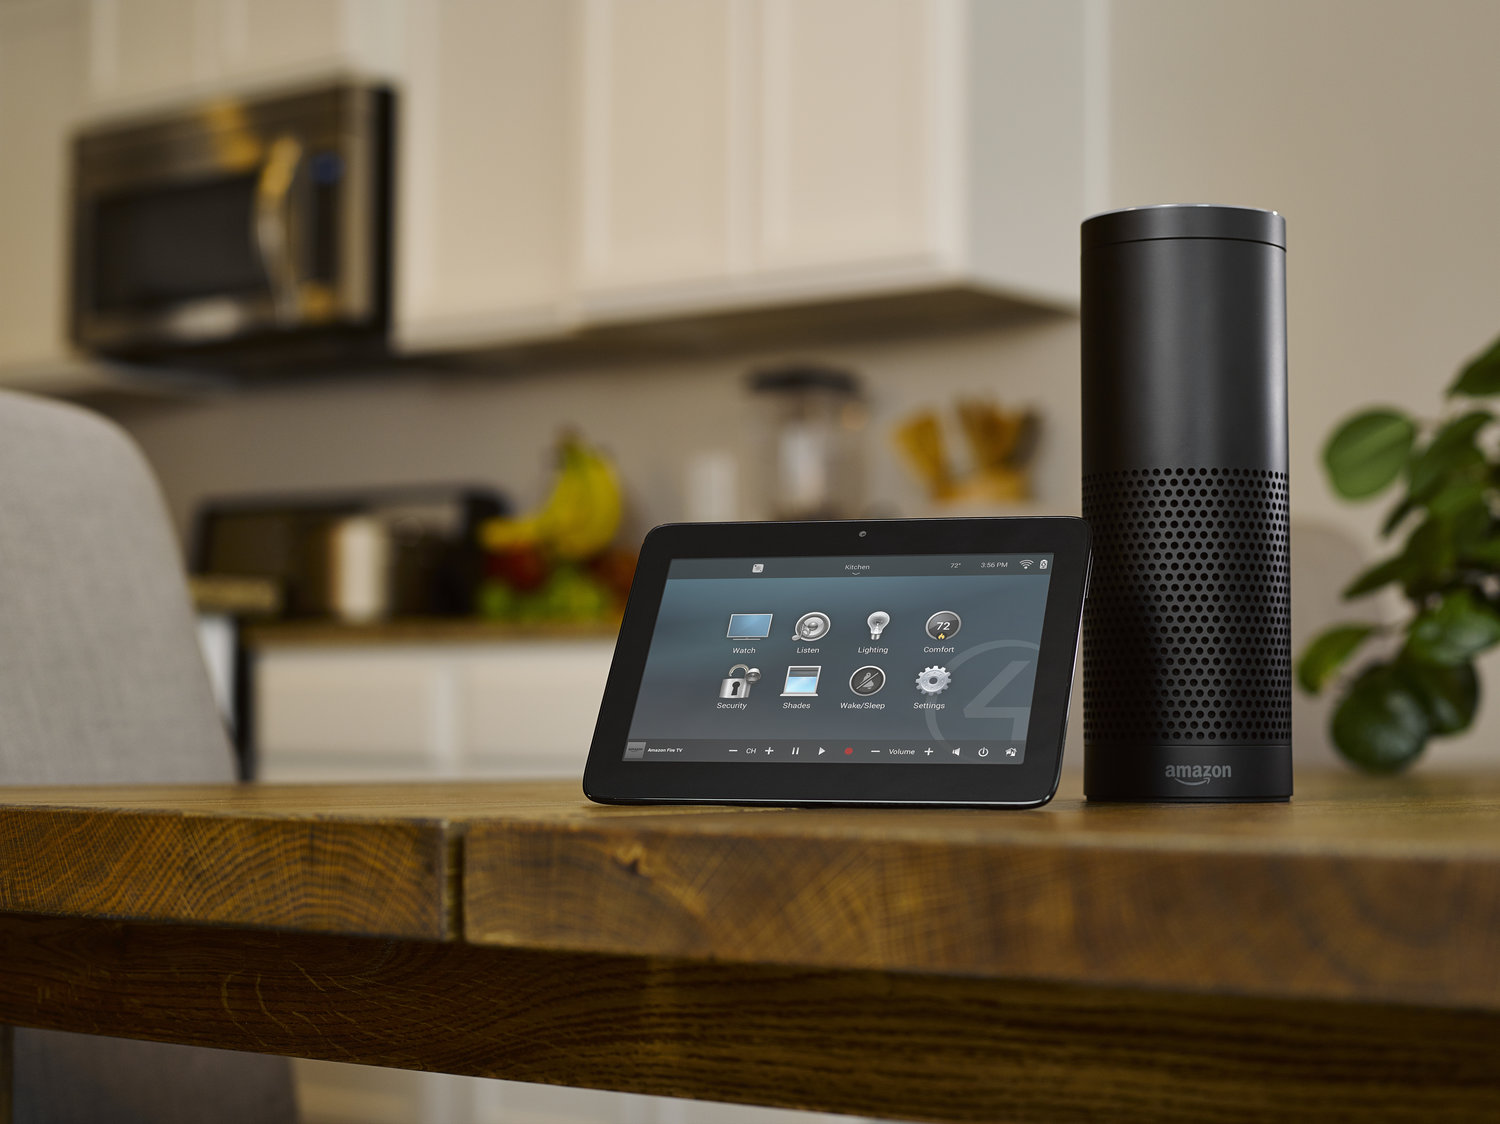 WITH ALEXA, CONTROL YOUR HOME WITH YOUR VOICE